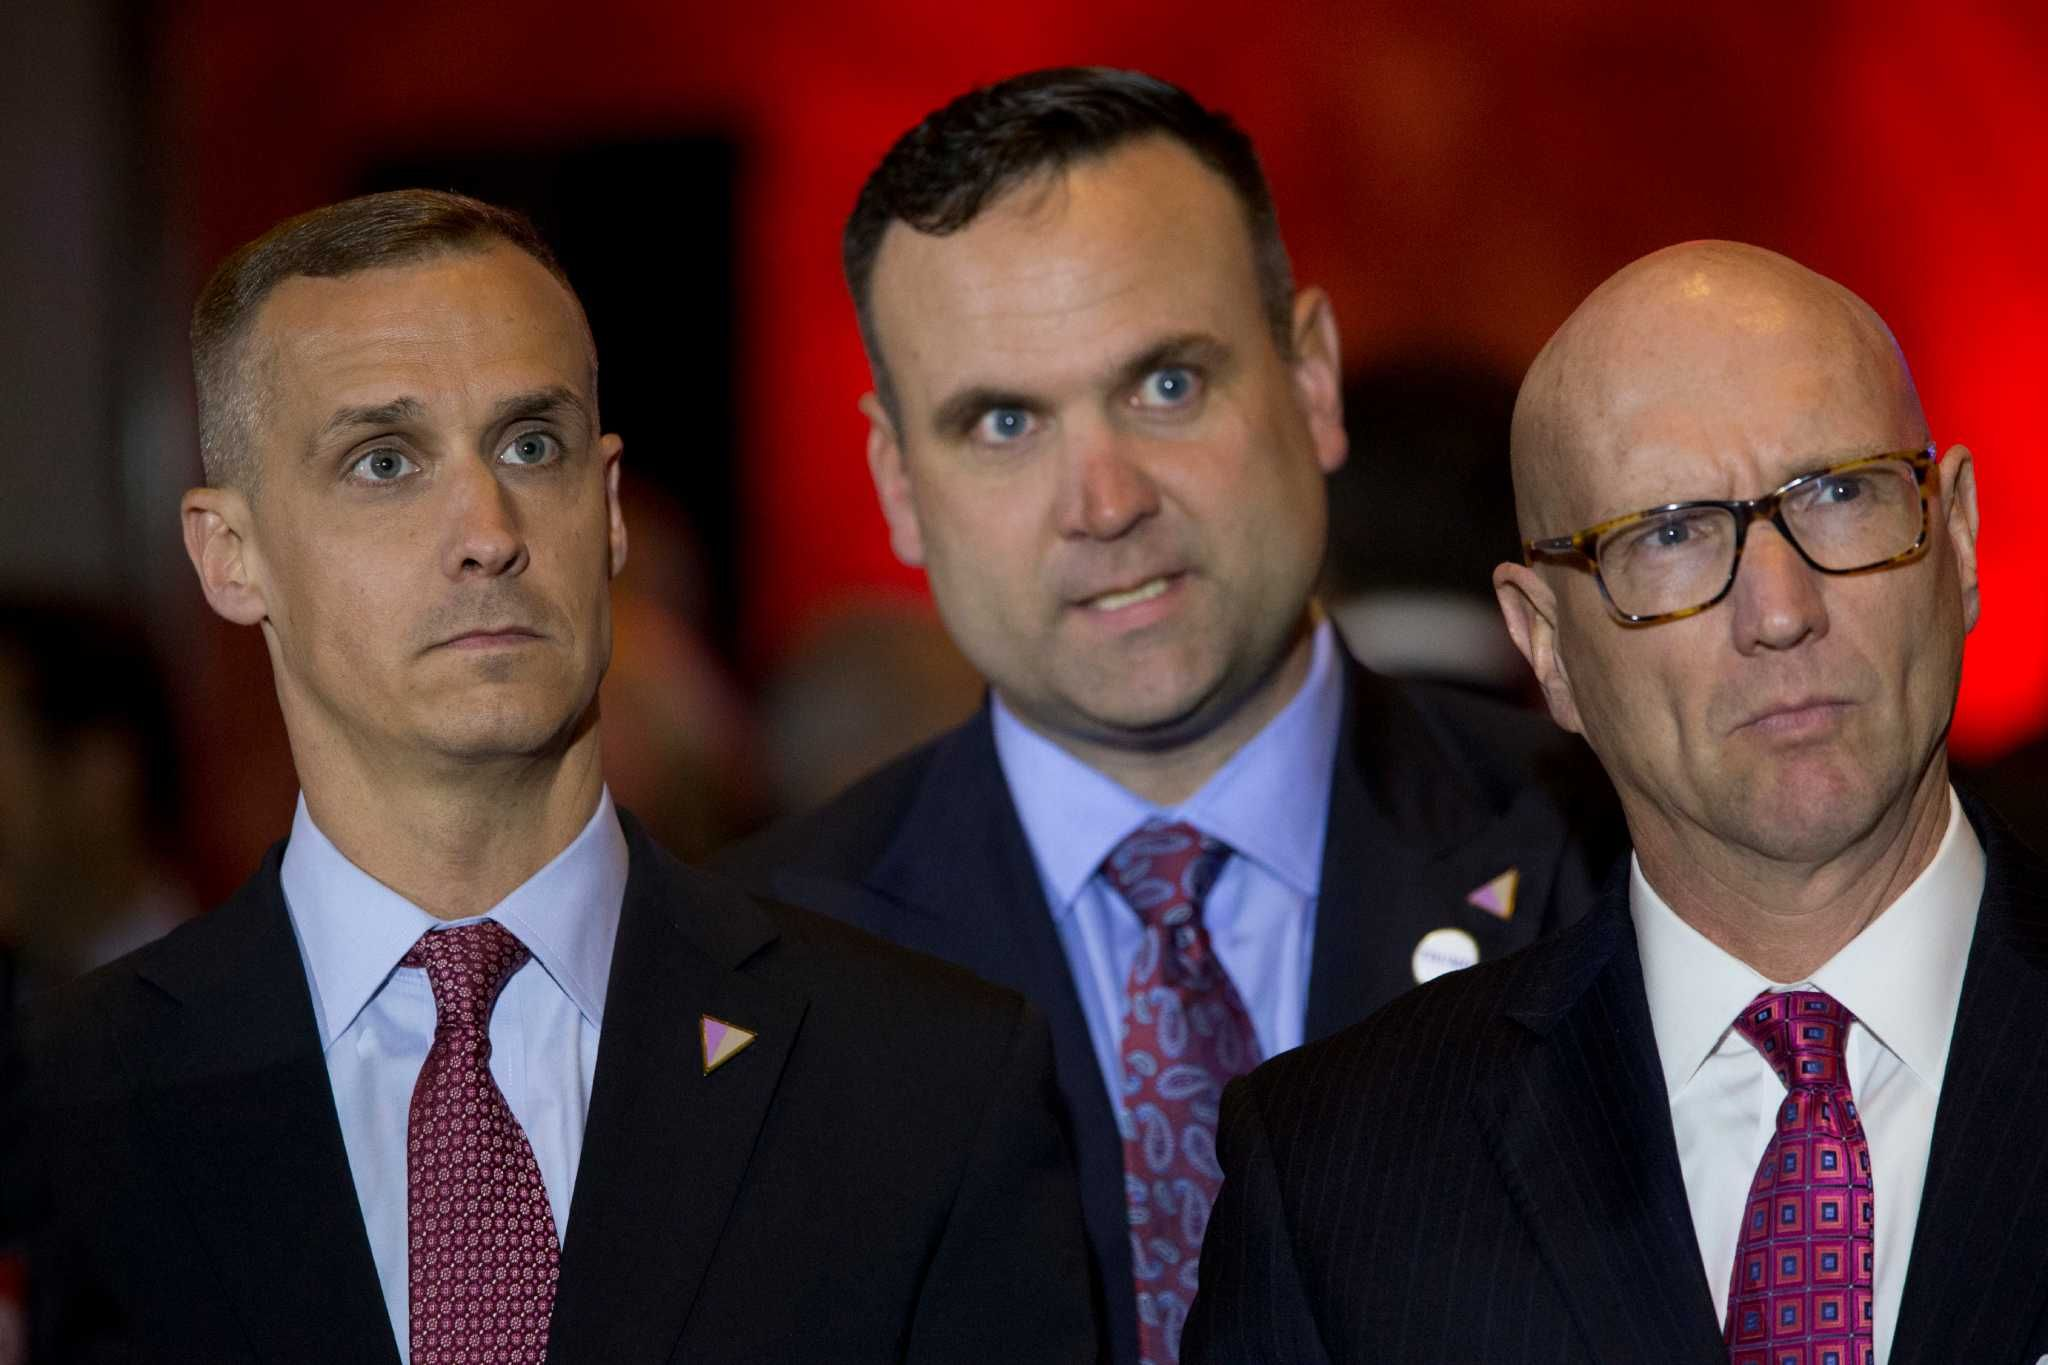 Trump's original 4 staffers behind his historic victory - SFGate